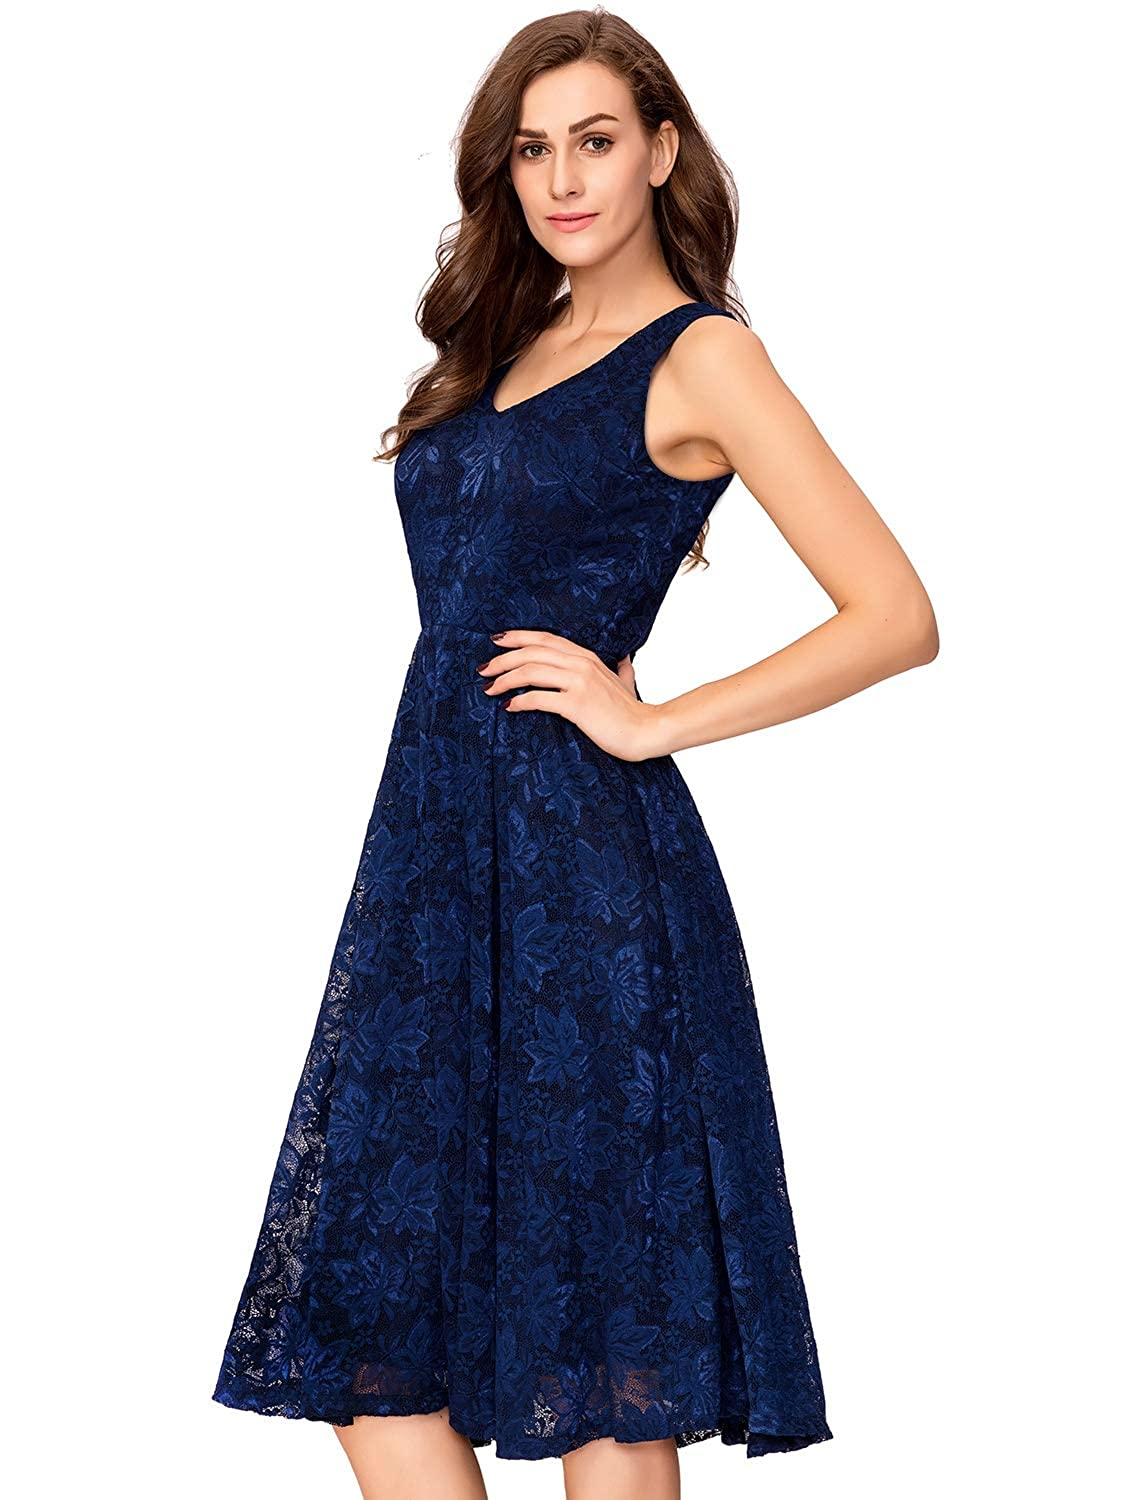 62f2a561b5c Amazon.com  Noctflos Lace V Neck Fit   Flare Midi Cocktail Dress for Women  Party Wedding  Clothing